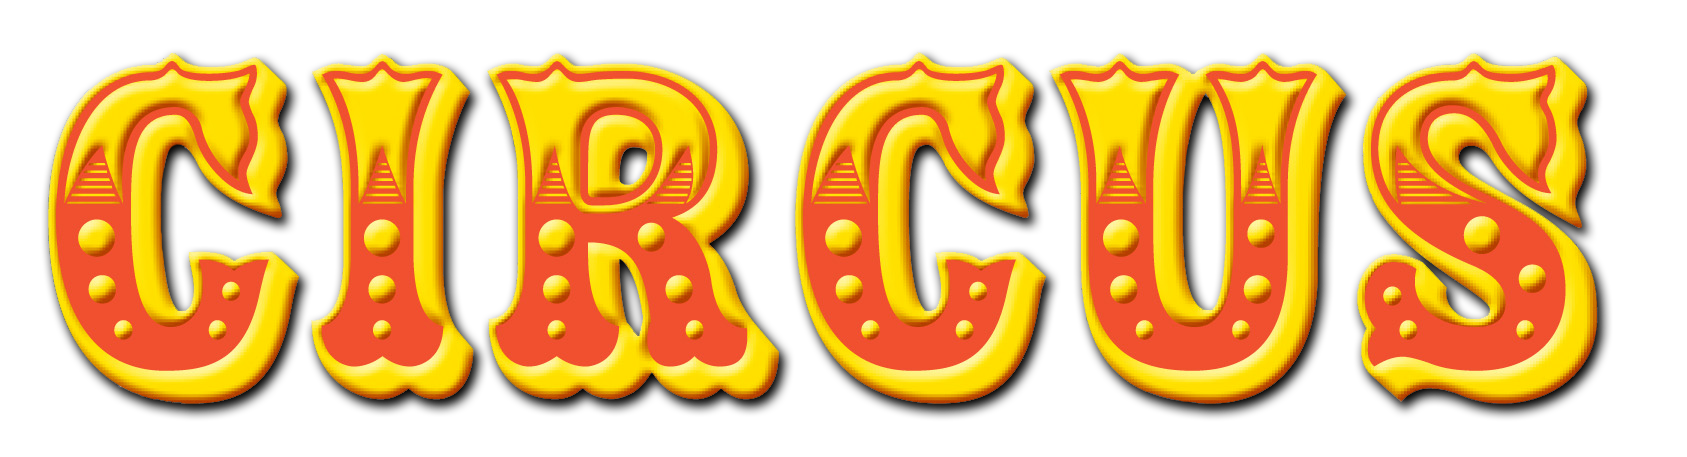 circus banner png